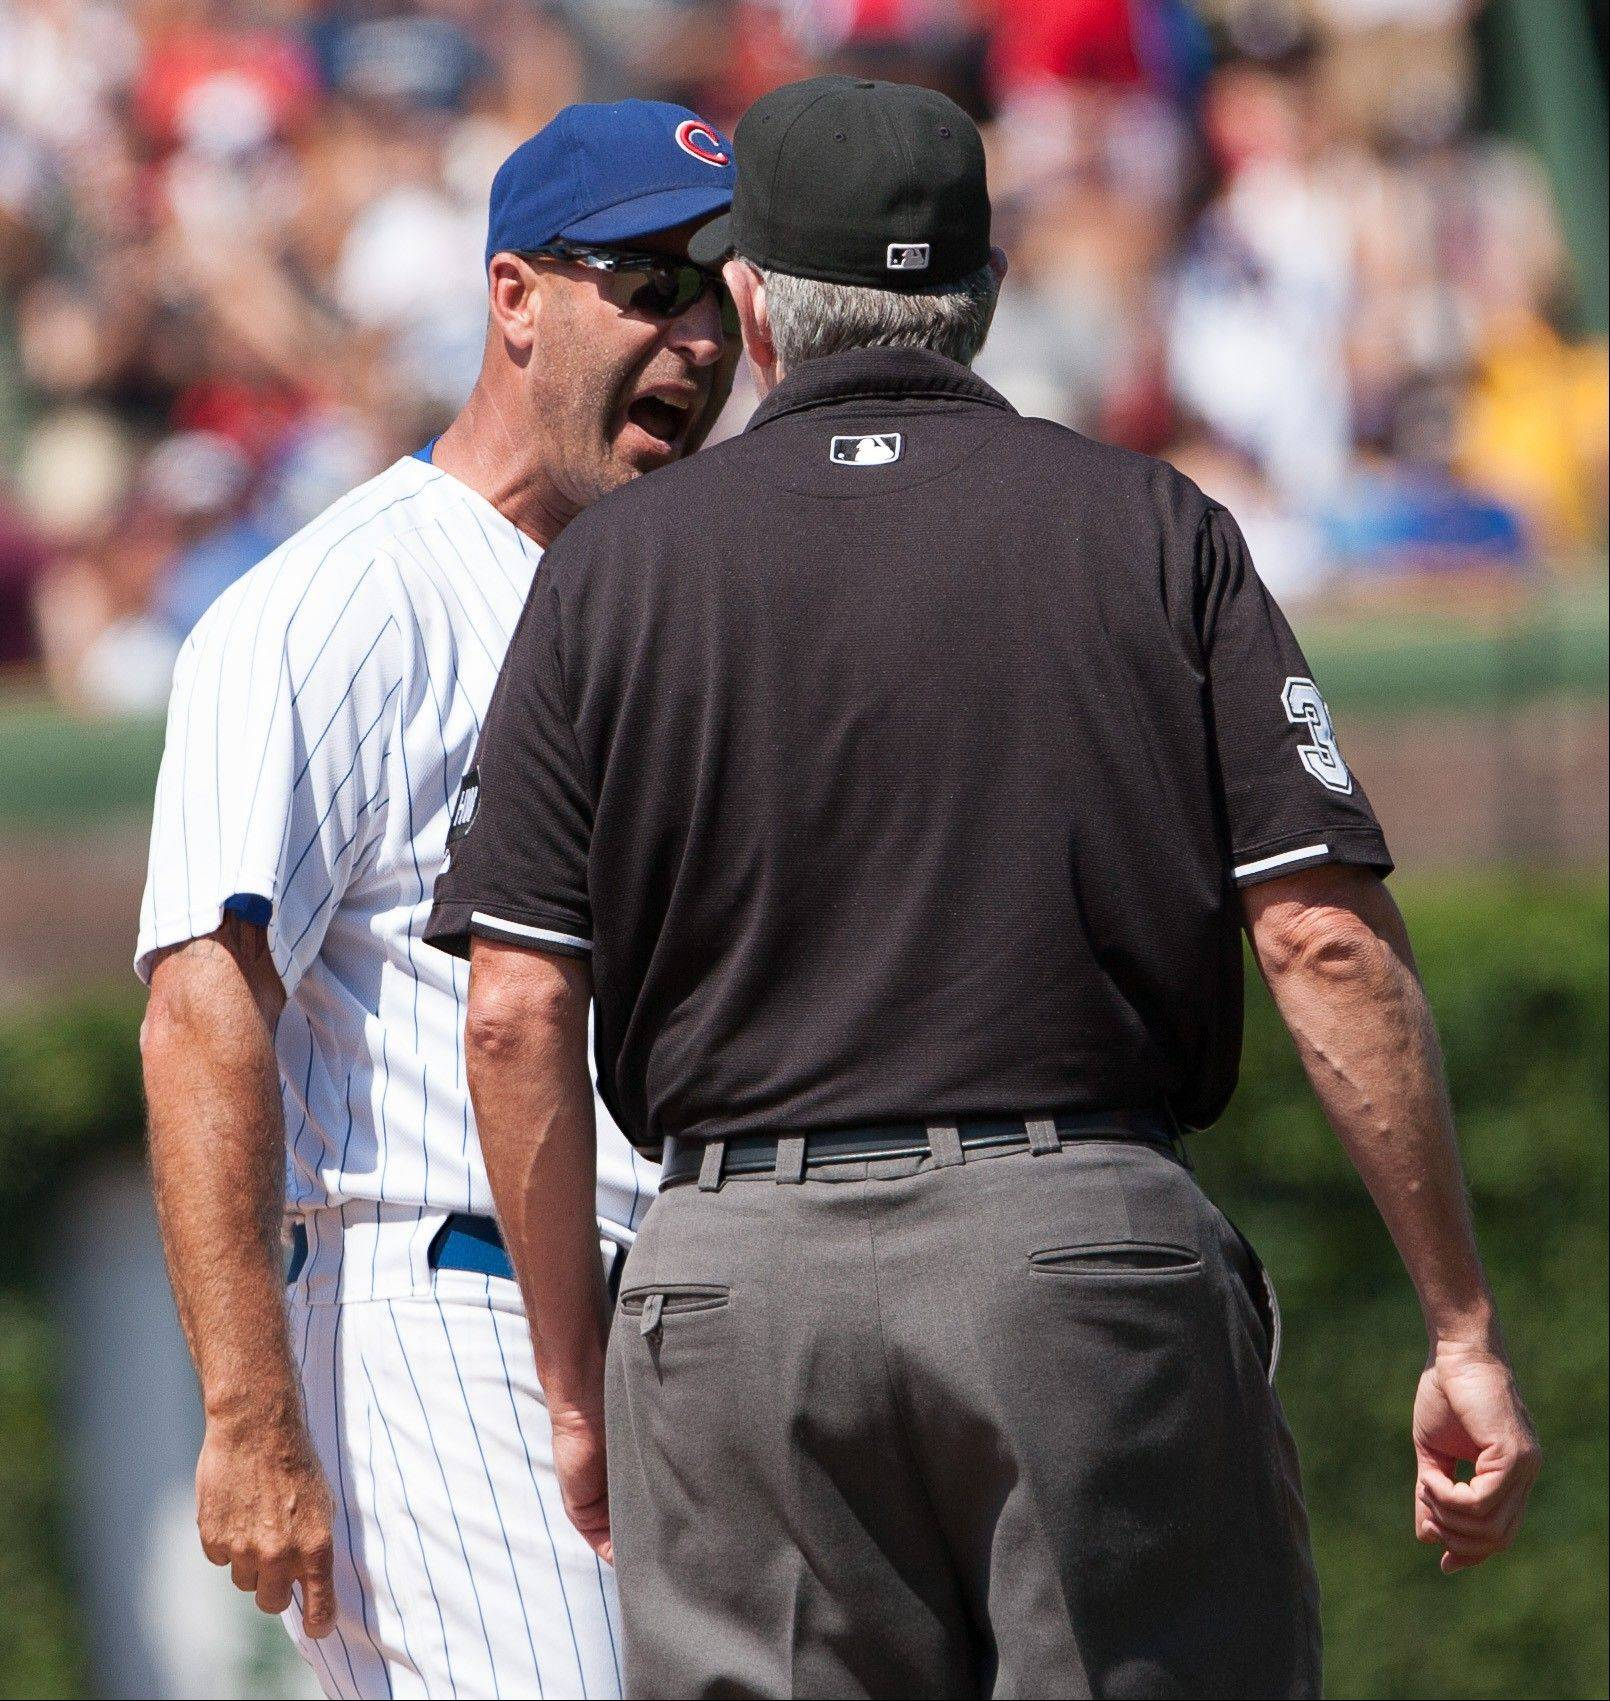 Chicago Cubs manager Dale Sveum, left, argues with first base umpire Mike Winters before being tossed from a baseball game against the St Louis Cardinals in Chicago, Saturday, July 28, 2012.